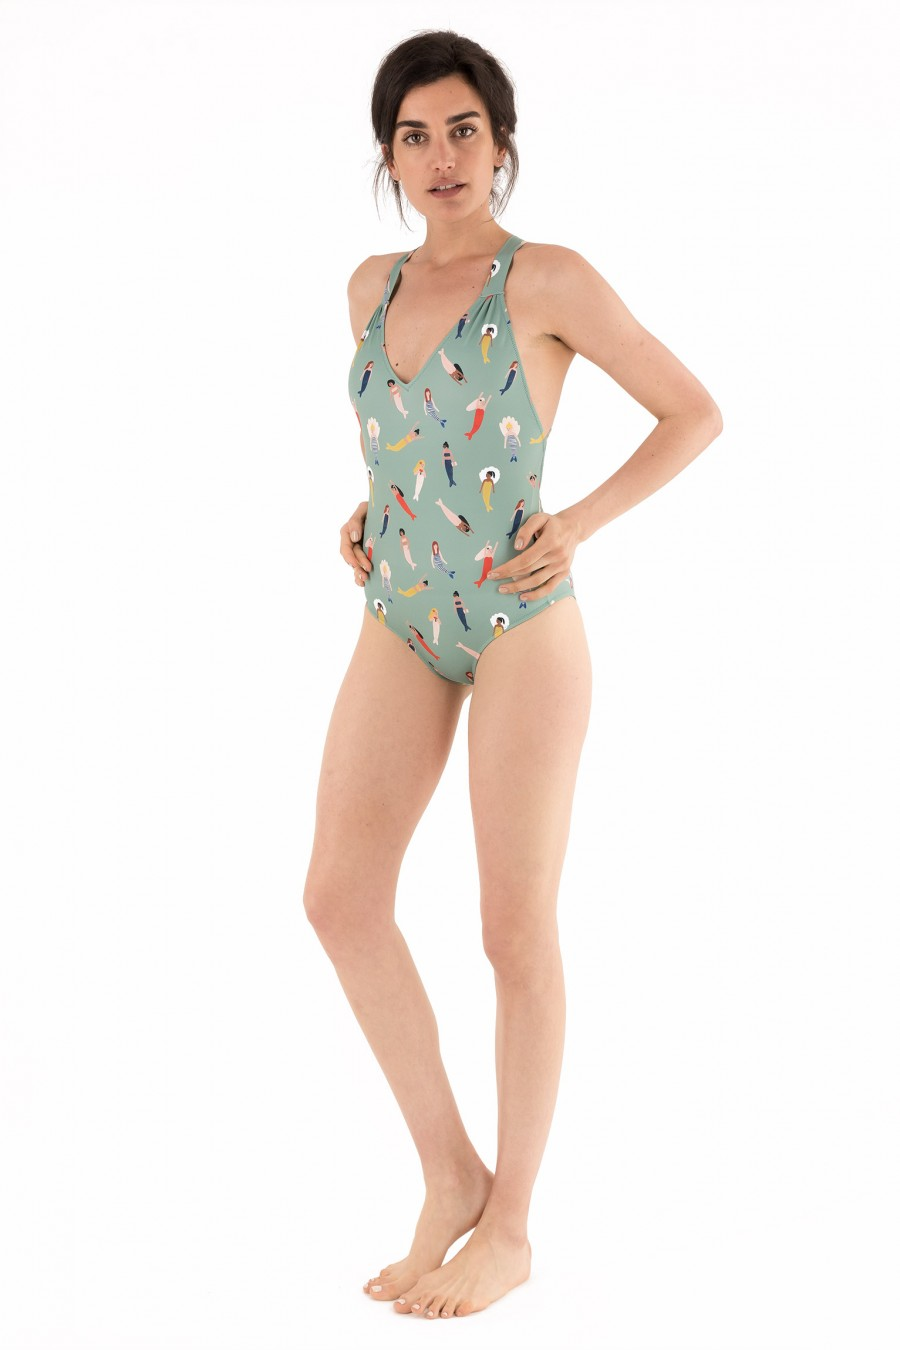 Mint one-piece swimsuit with mermaids